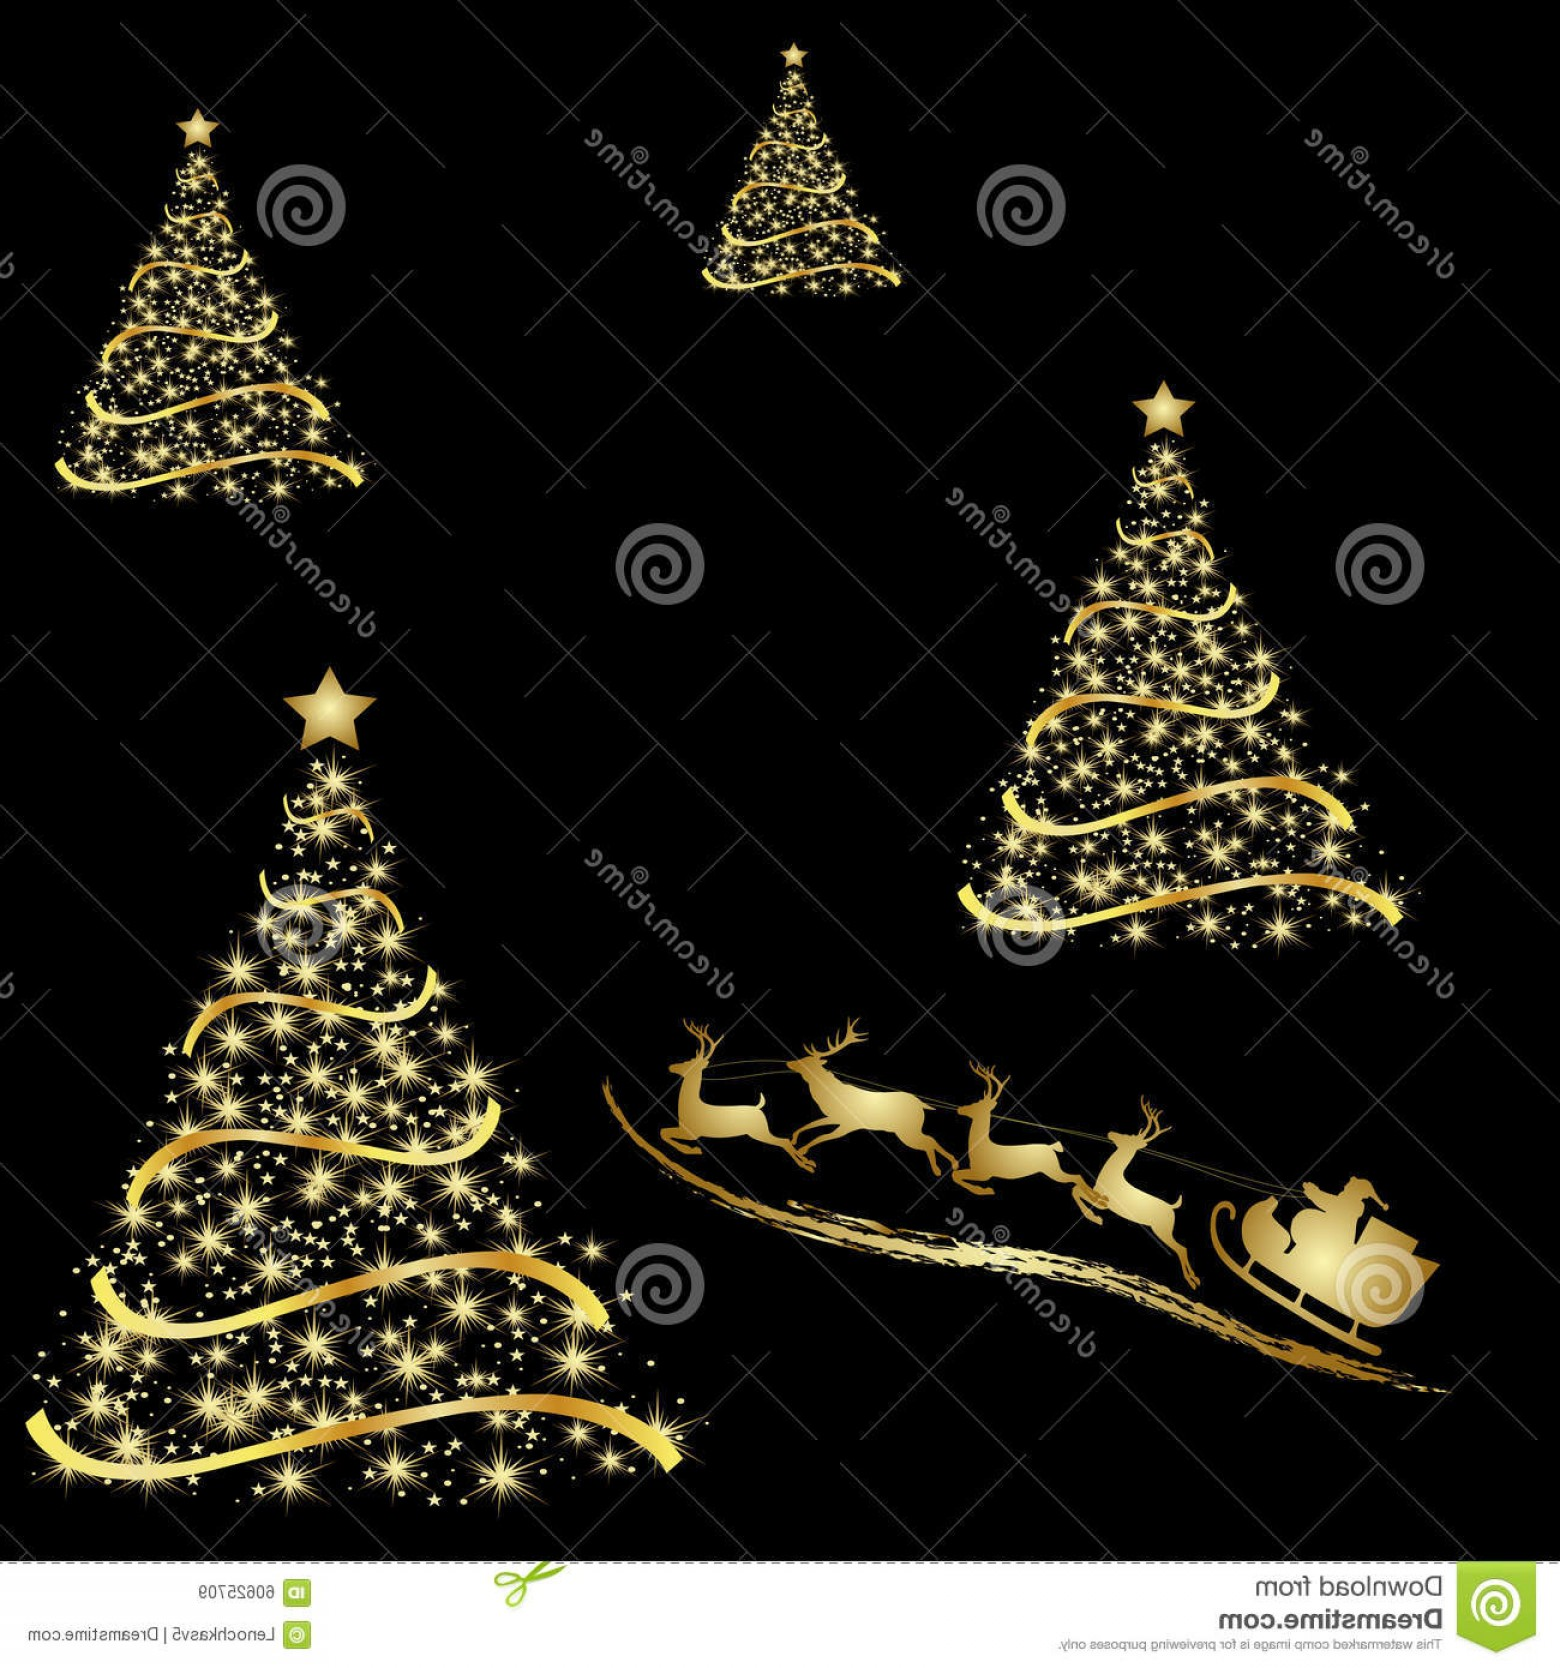 Less Christmas Tree Abstract Vector Background: Stock Illustration Abstract Golden Christmas Tree Black Background Vector Eps Illustration Image